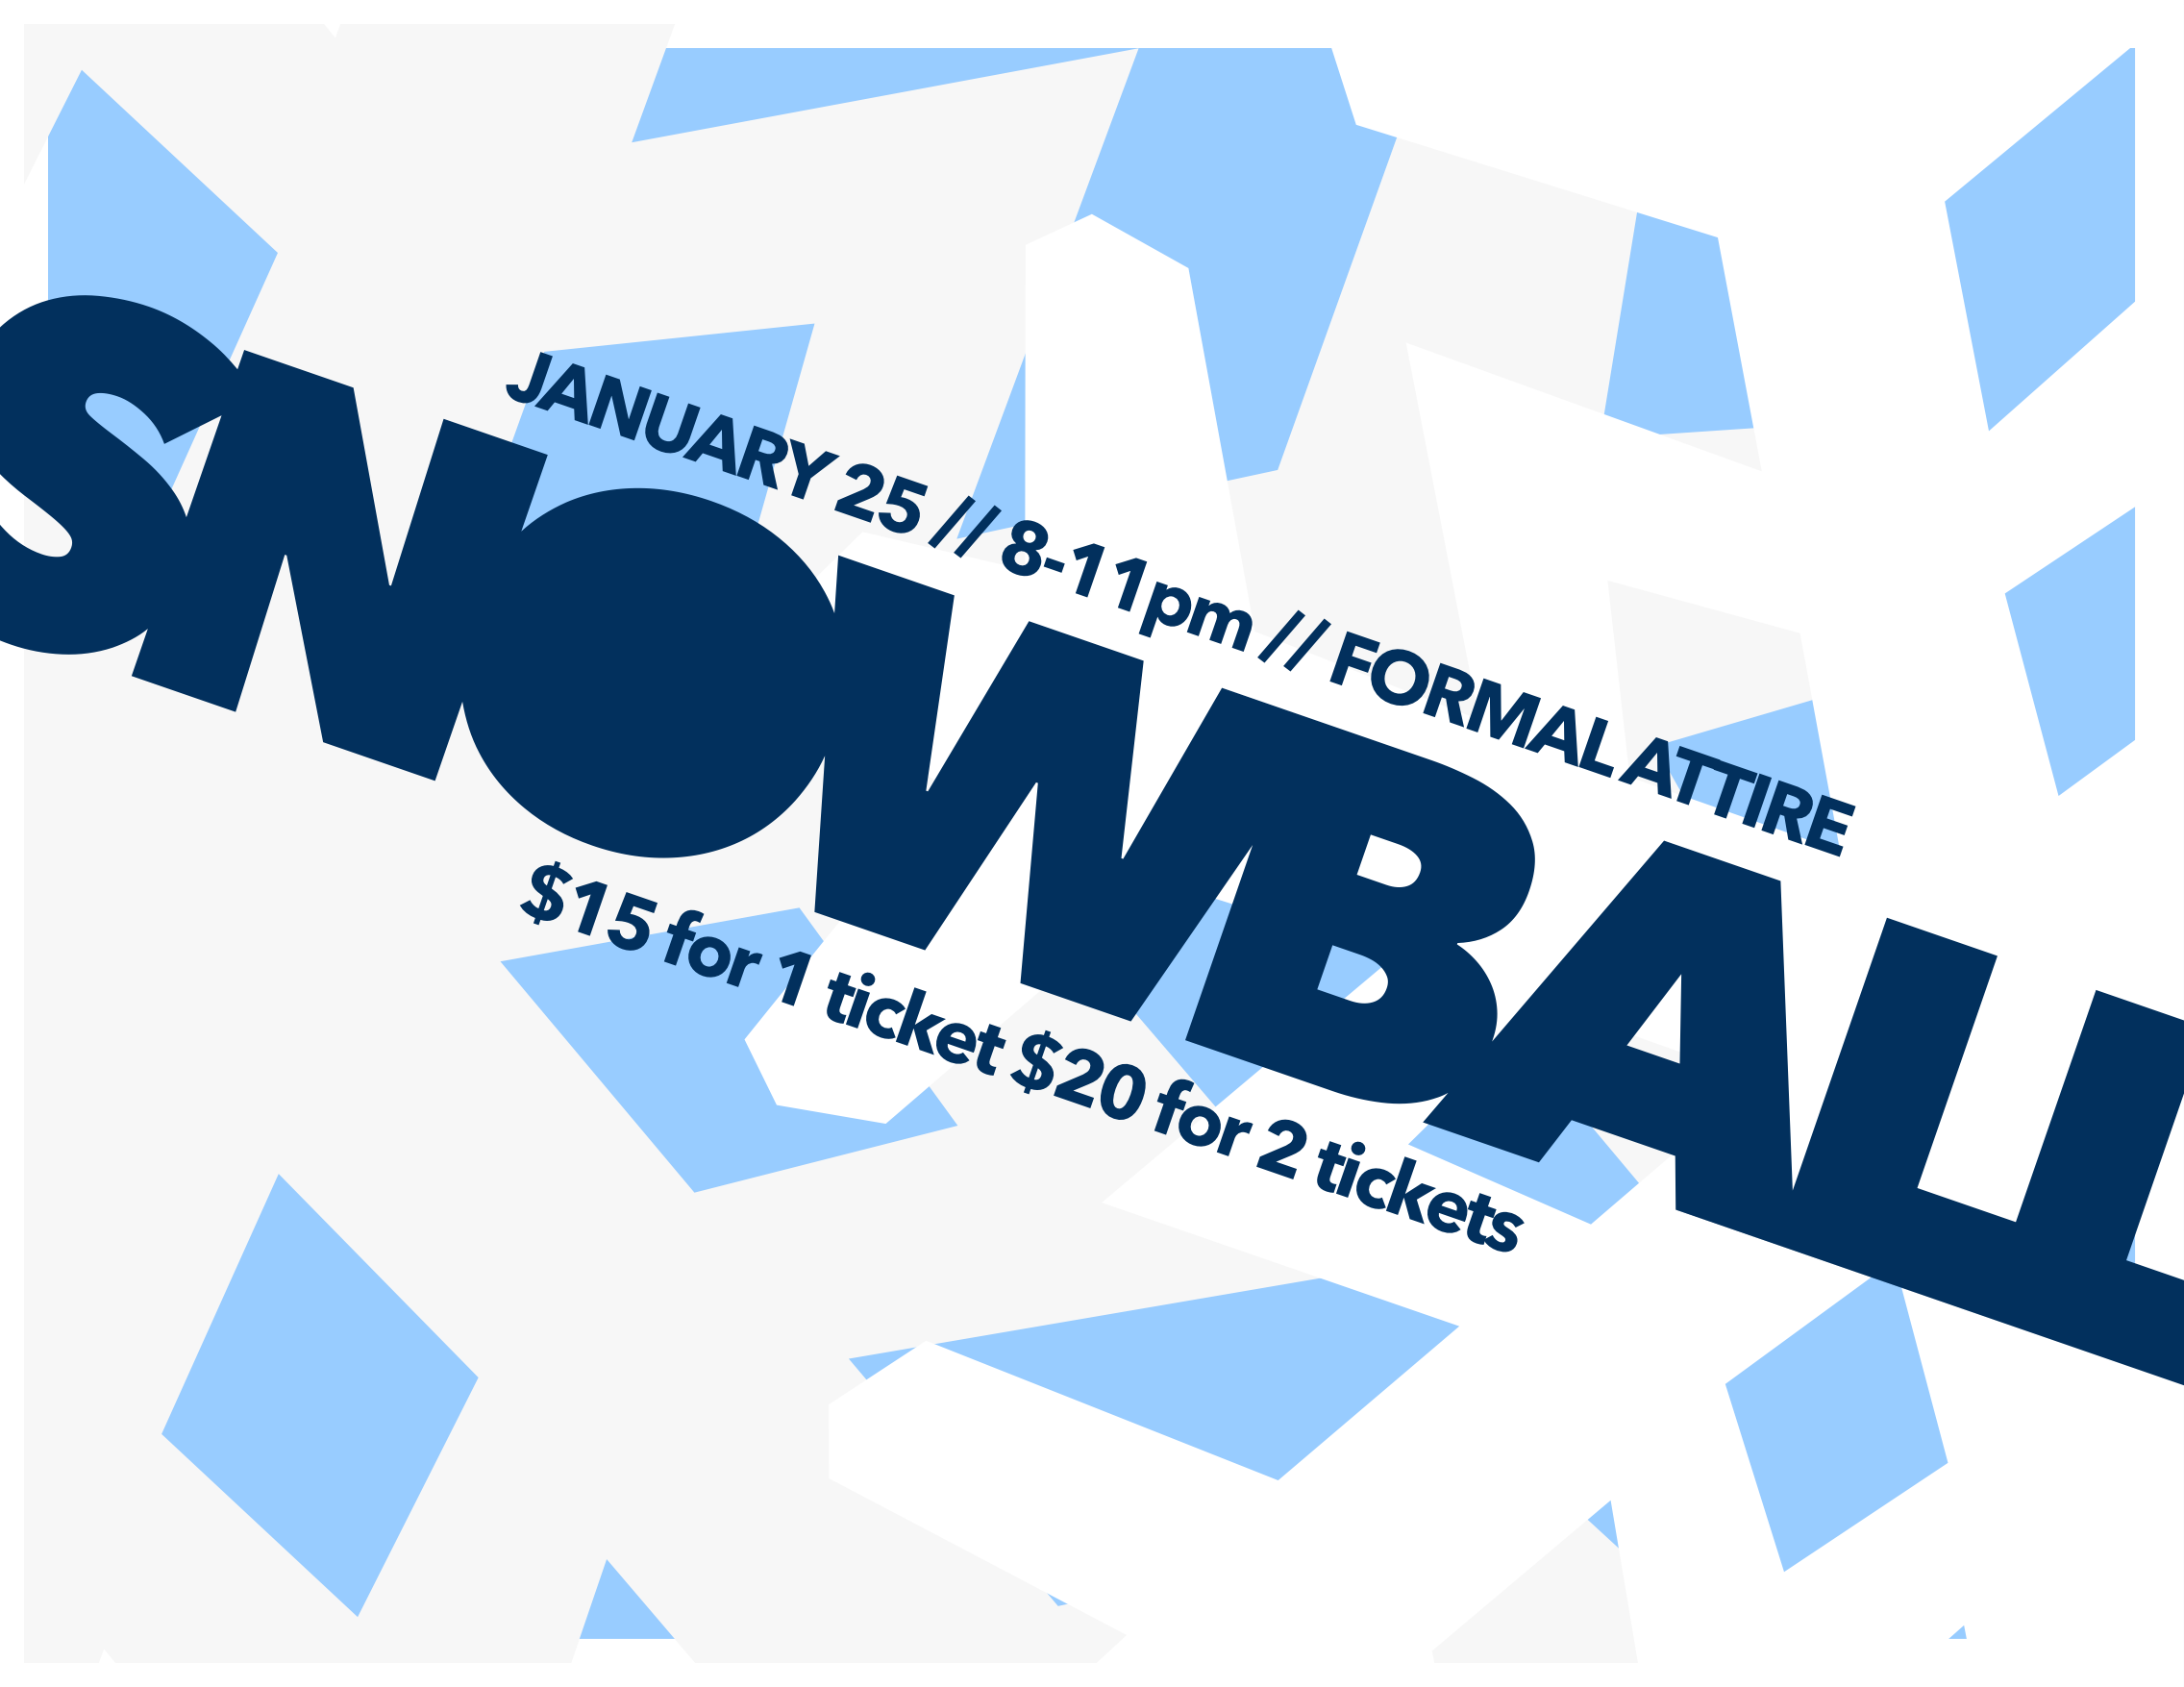 Snowball 2019: a preview